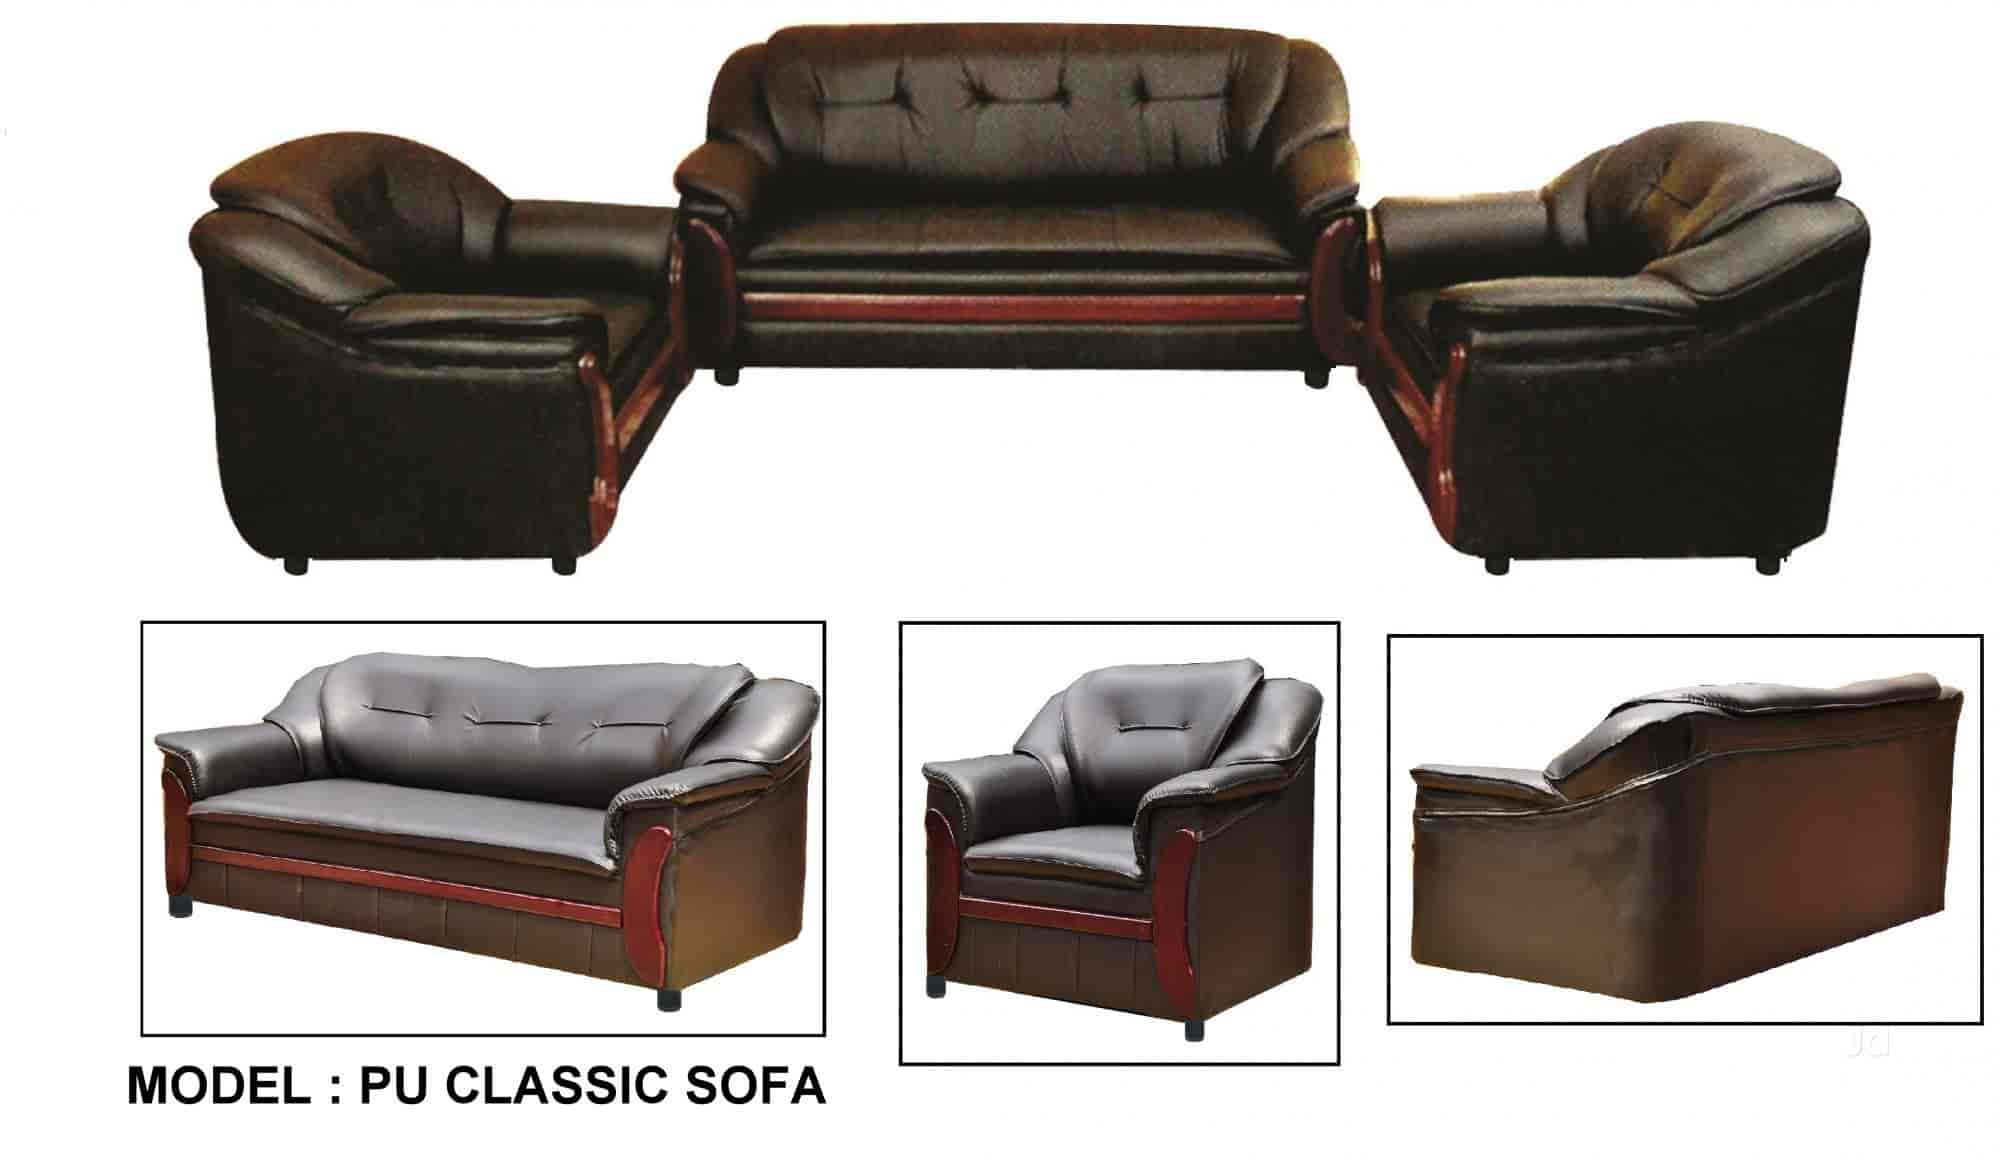 Sofa Set Images With Price In Chennai Sofa Sets Cheap In Chennai Cabinets Matttroy